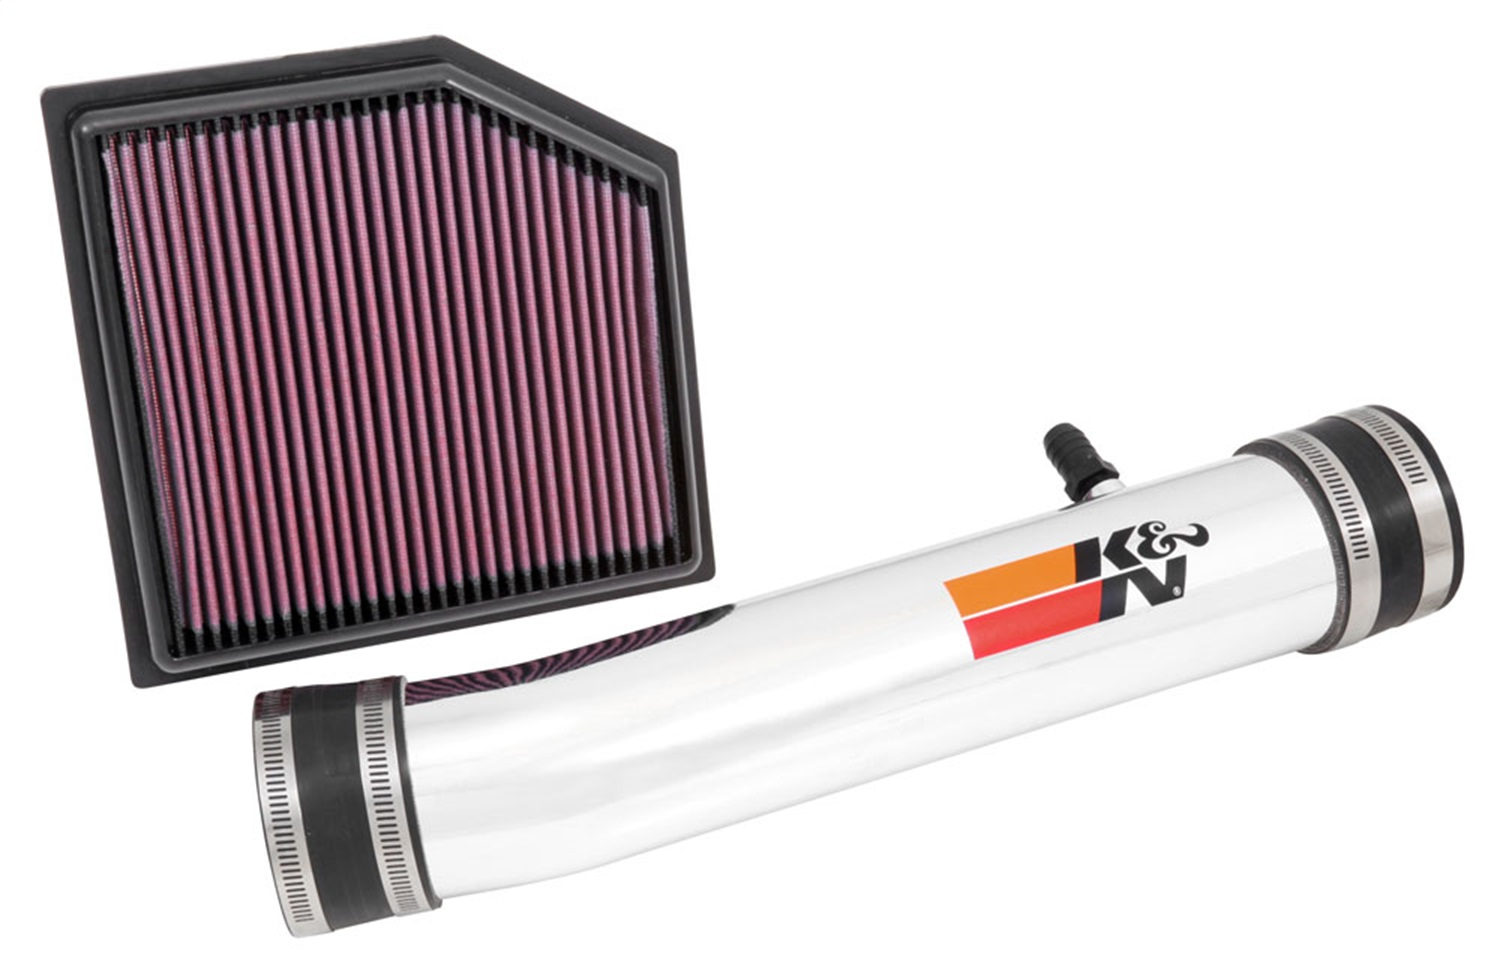 K&N Filters 69-8704TP Typhoon; Cold Air Intake Filter Assembly Fits 13-14 GS350 69-8704TP